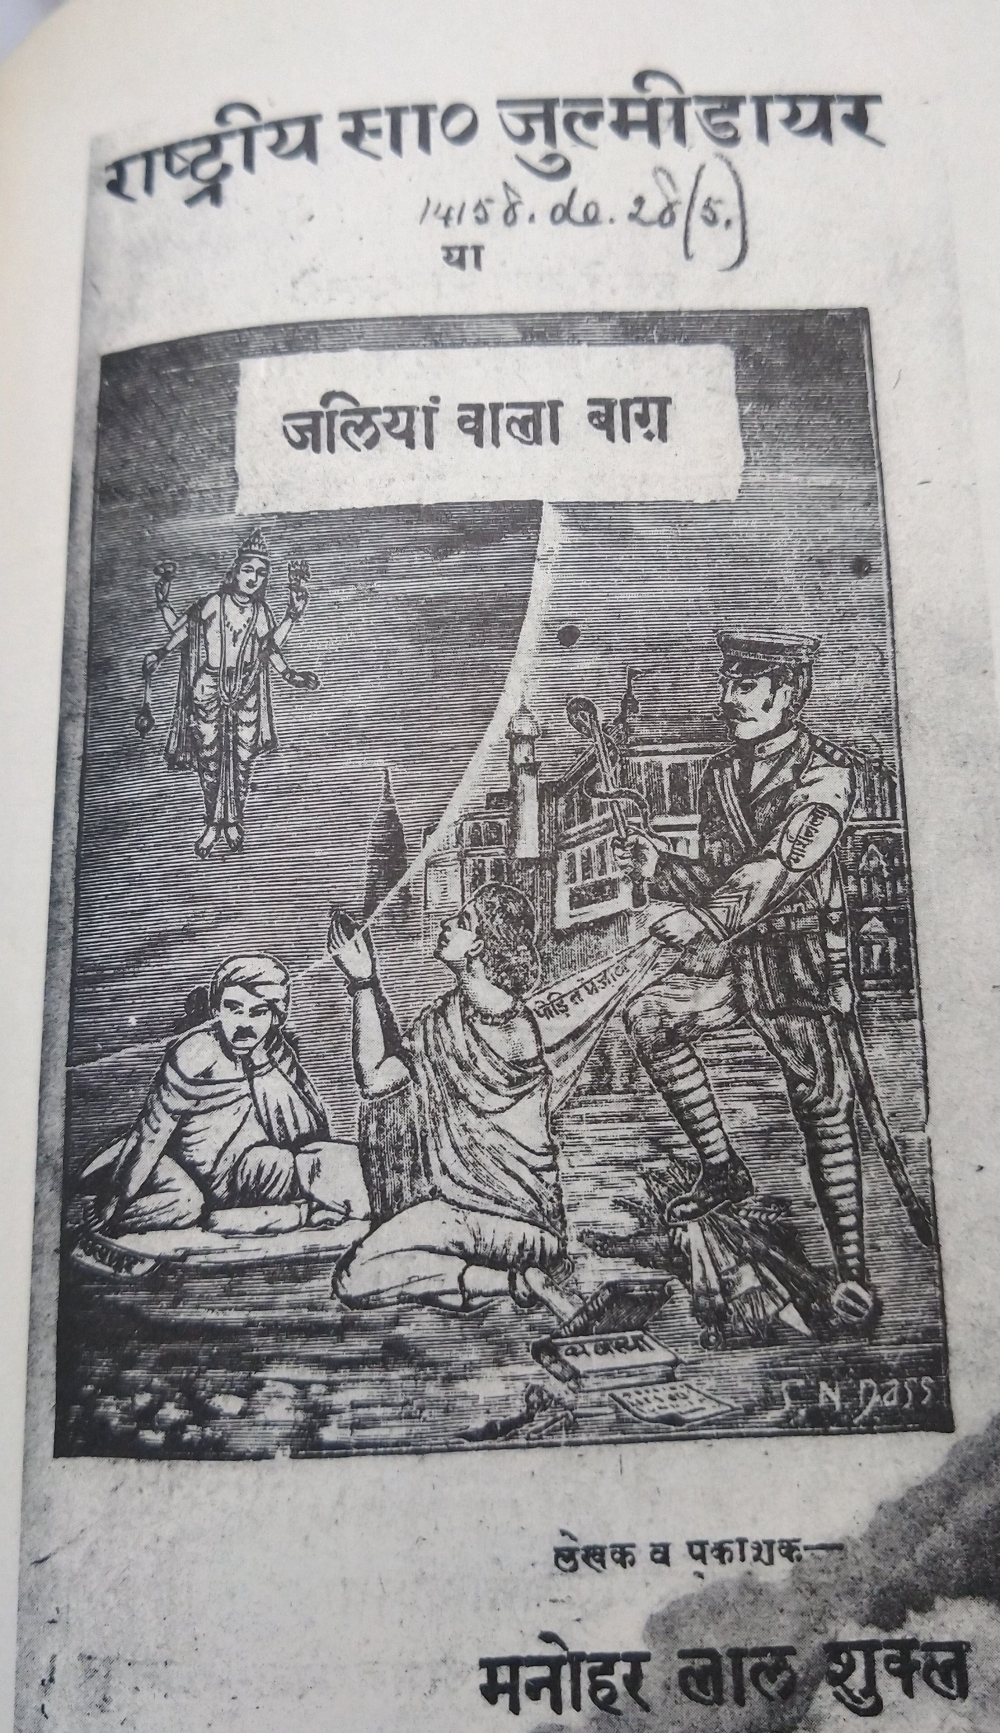 Fig.3: Title page of Rashtriya Saangit Julmi Dayar, written by Manoharlal Shukla in 1922. Note Gandhi sitting thoughtfully, while 'Afflicted Punjab' appeals to Lord Vishnu, and a policeman labelled 'Martial Law' wields a whip (Courtesy: Kathryn Hansen, Grounds for Play, 109).